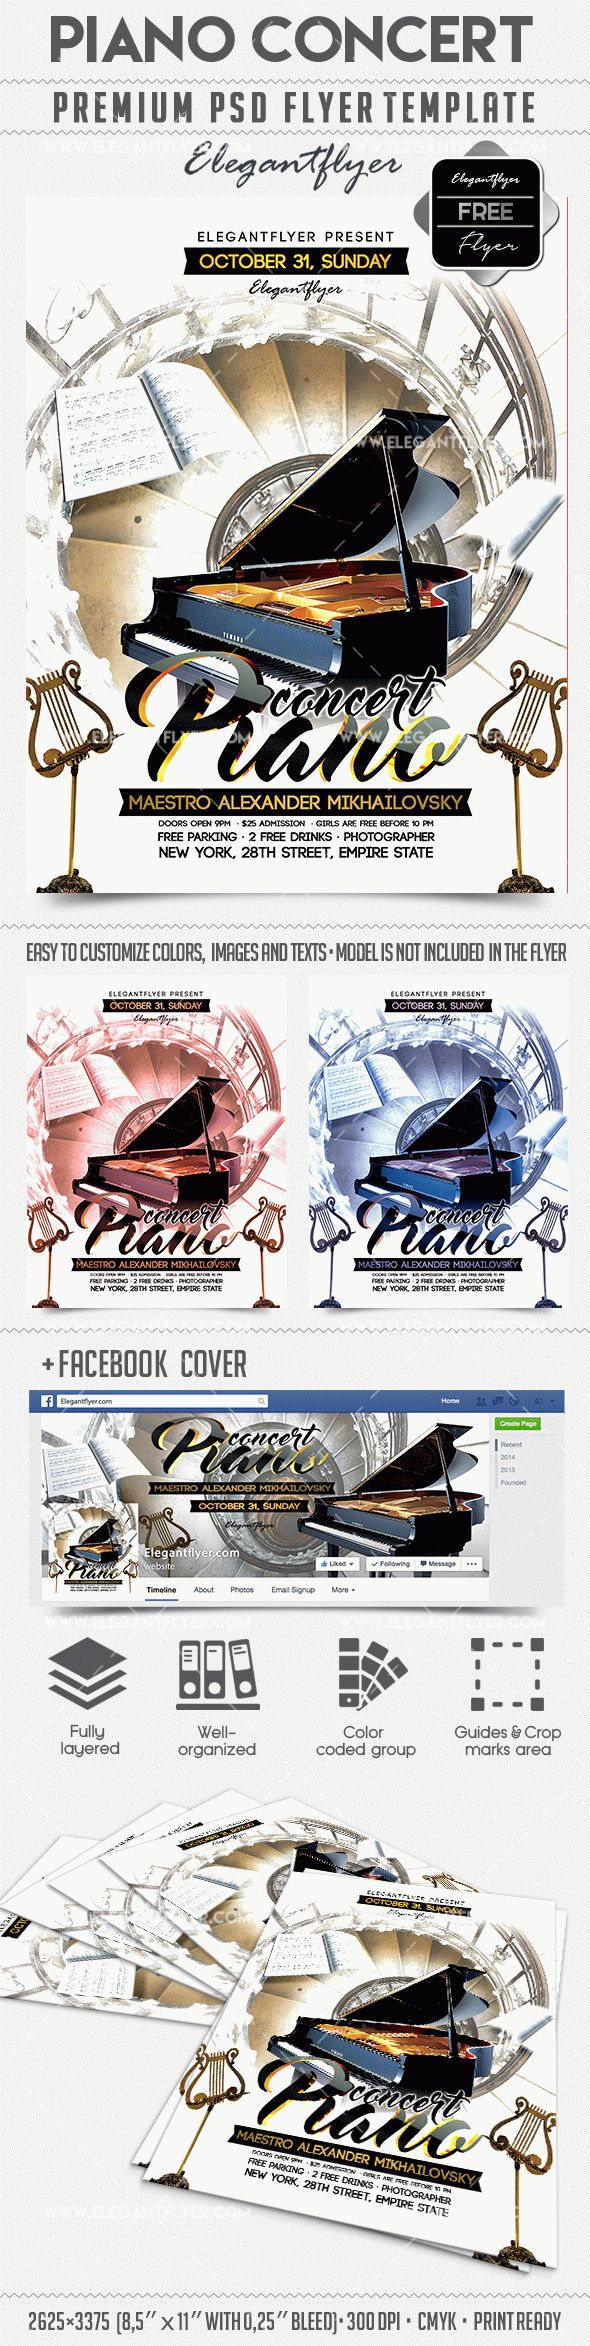 Piano concert – Free Flyer PSD Template + Facebook Cover